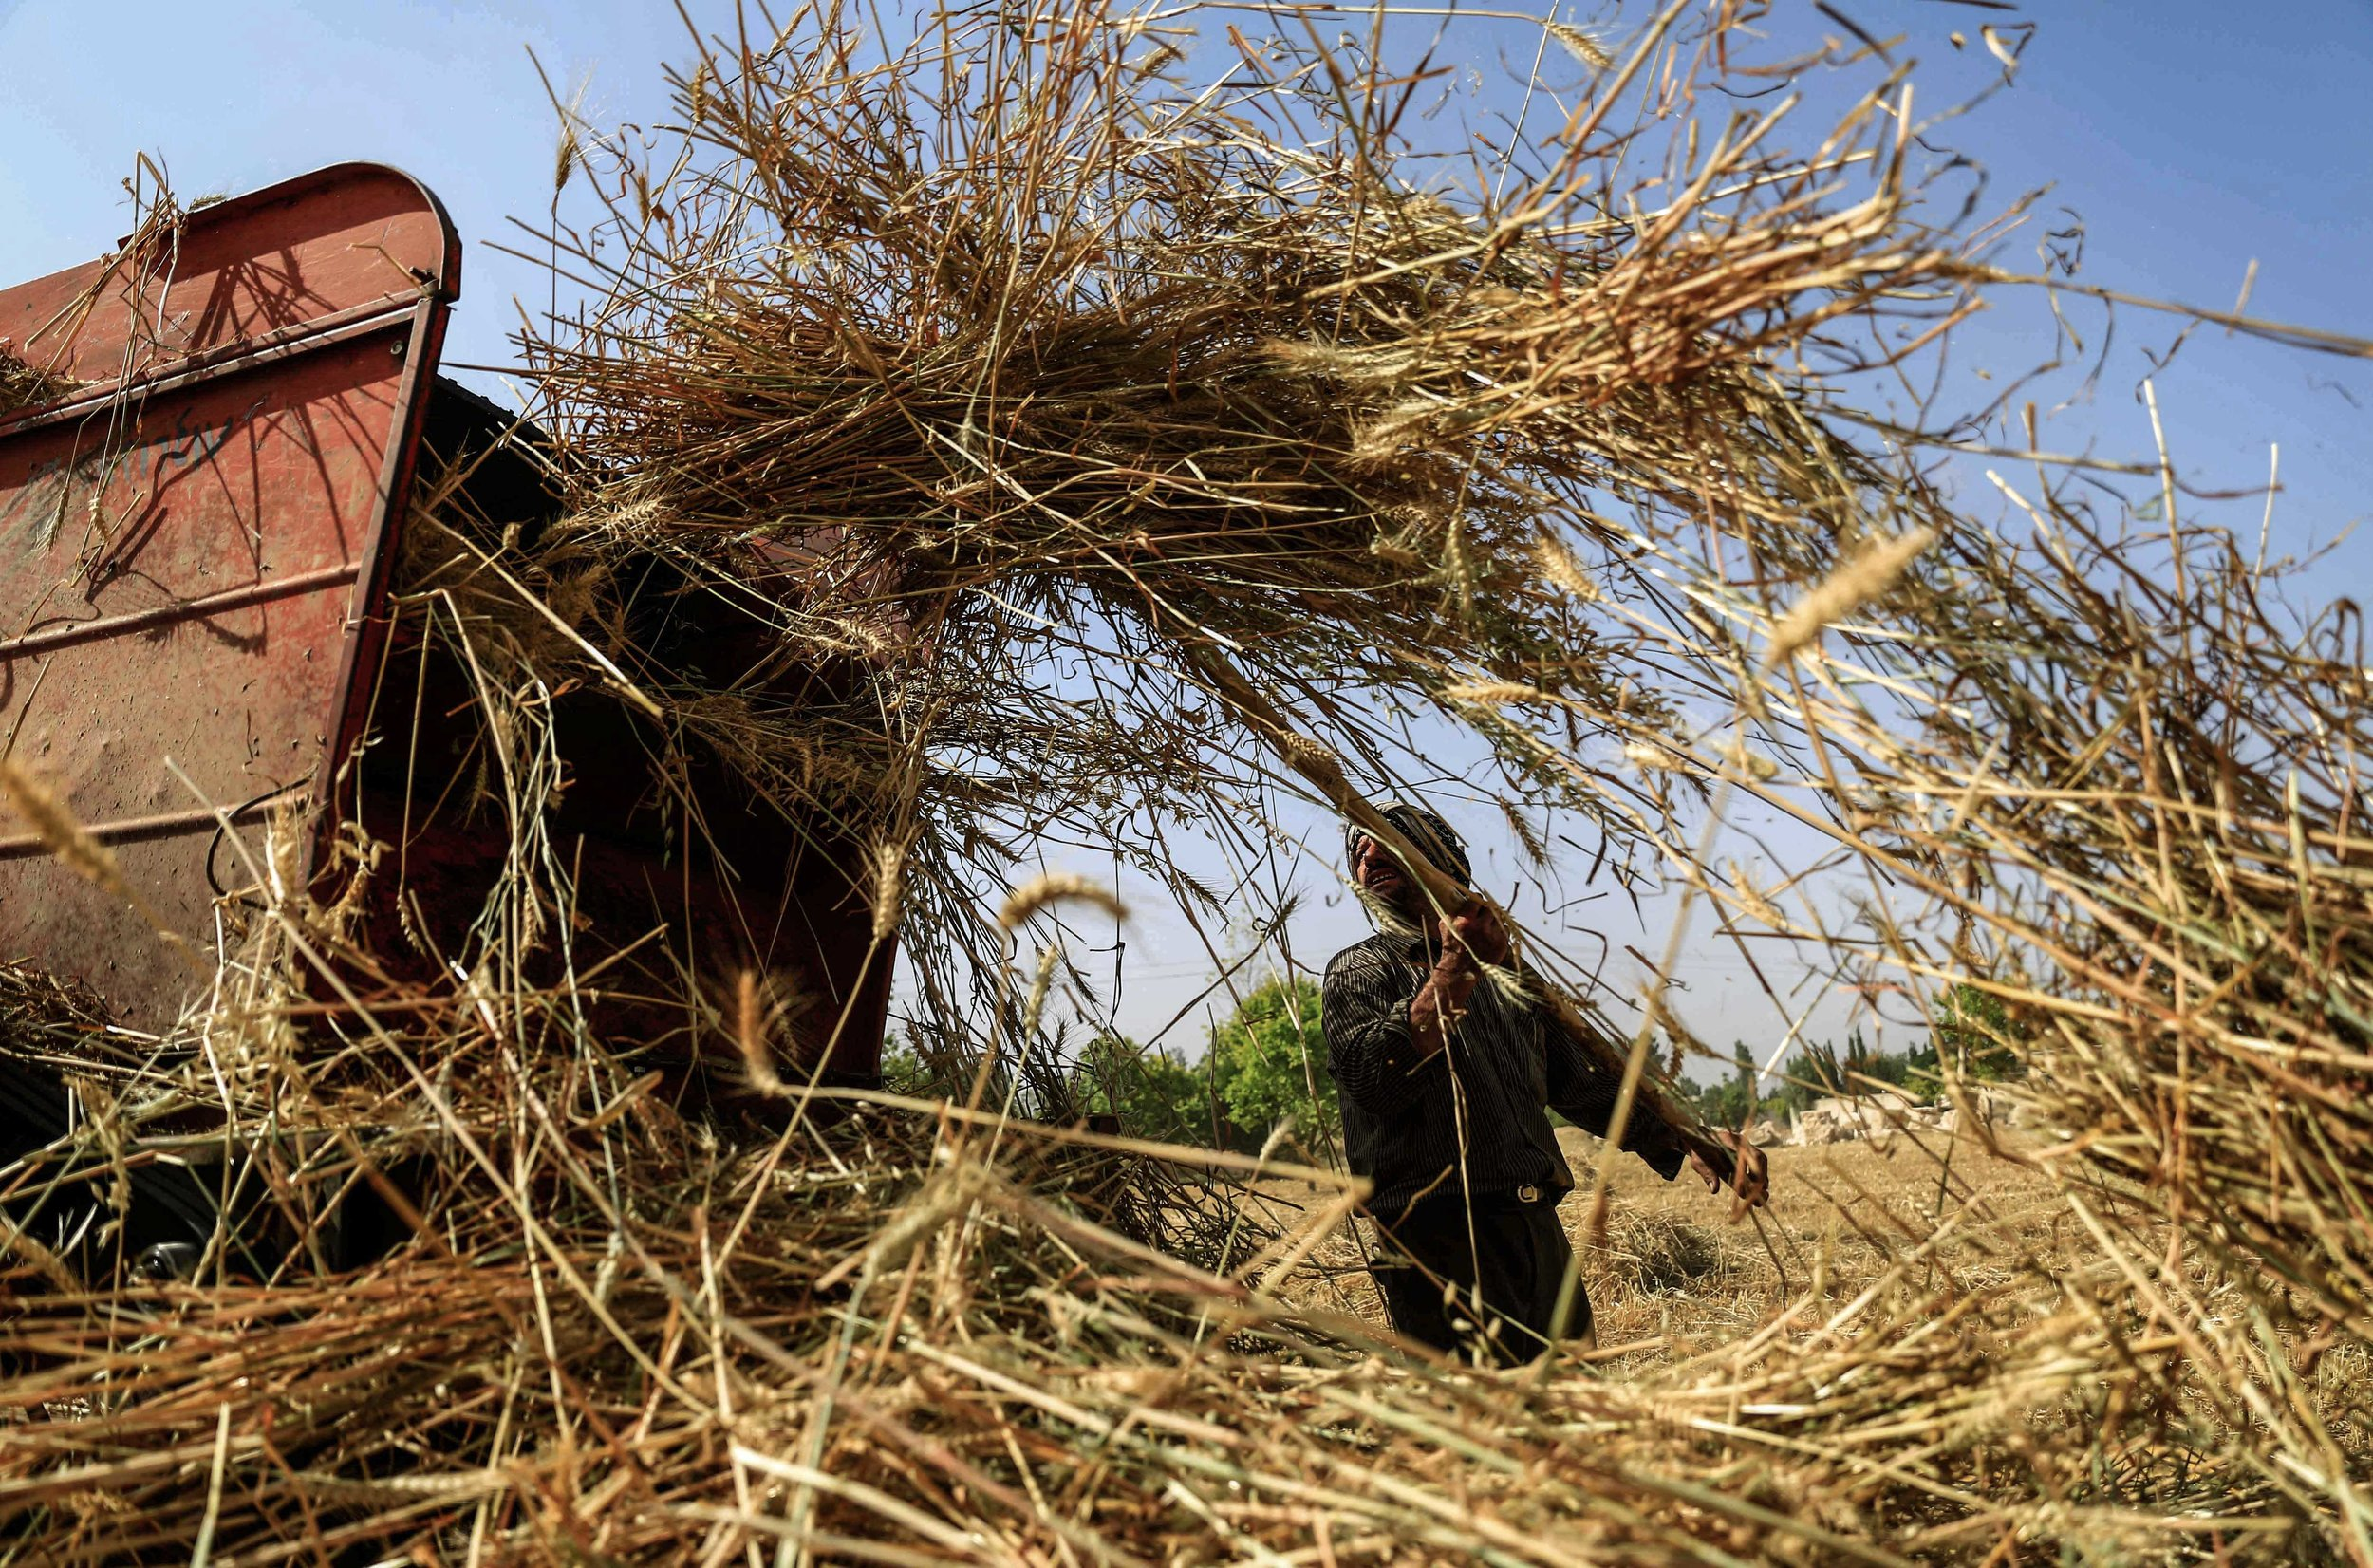 - A man harvests wheat in a field near the town of Hamouria.